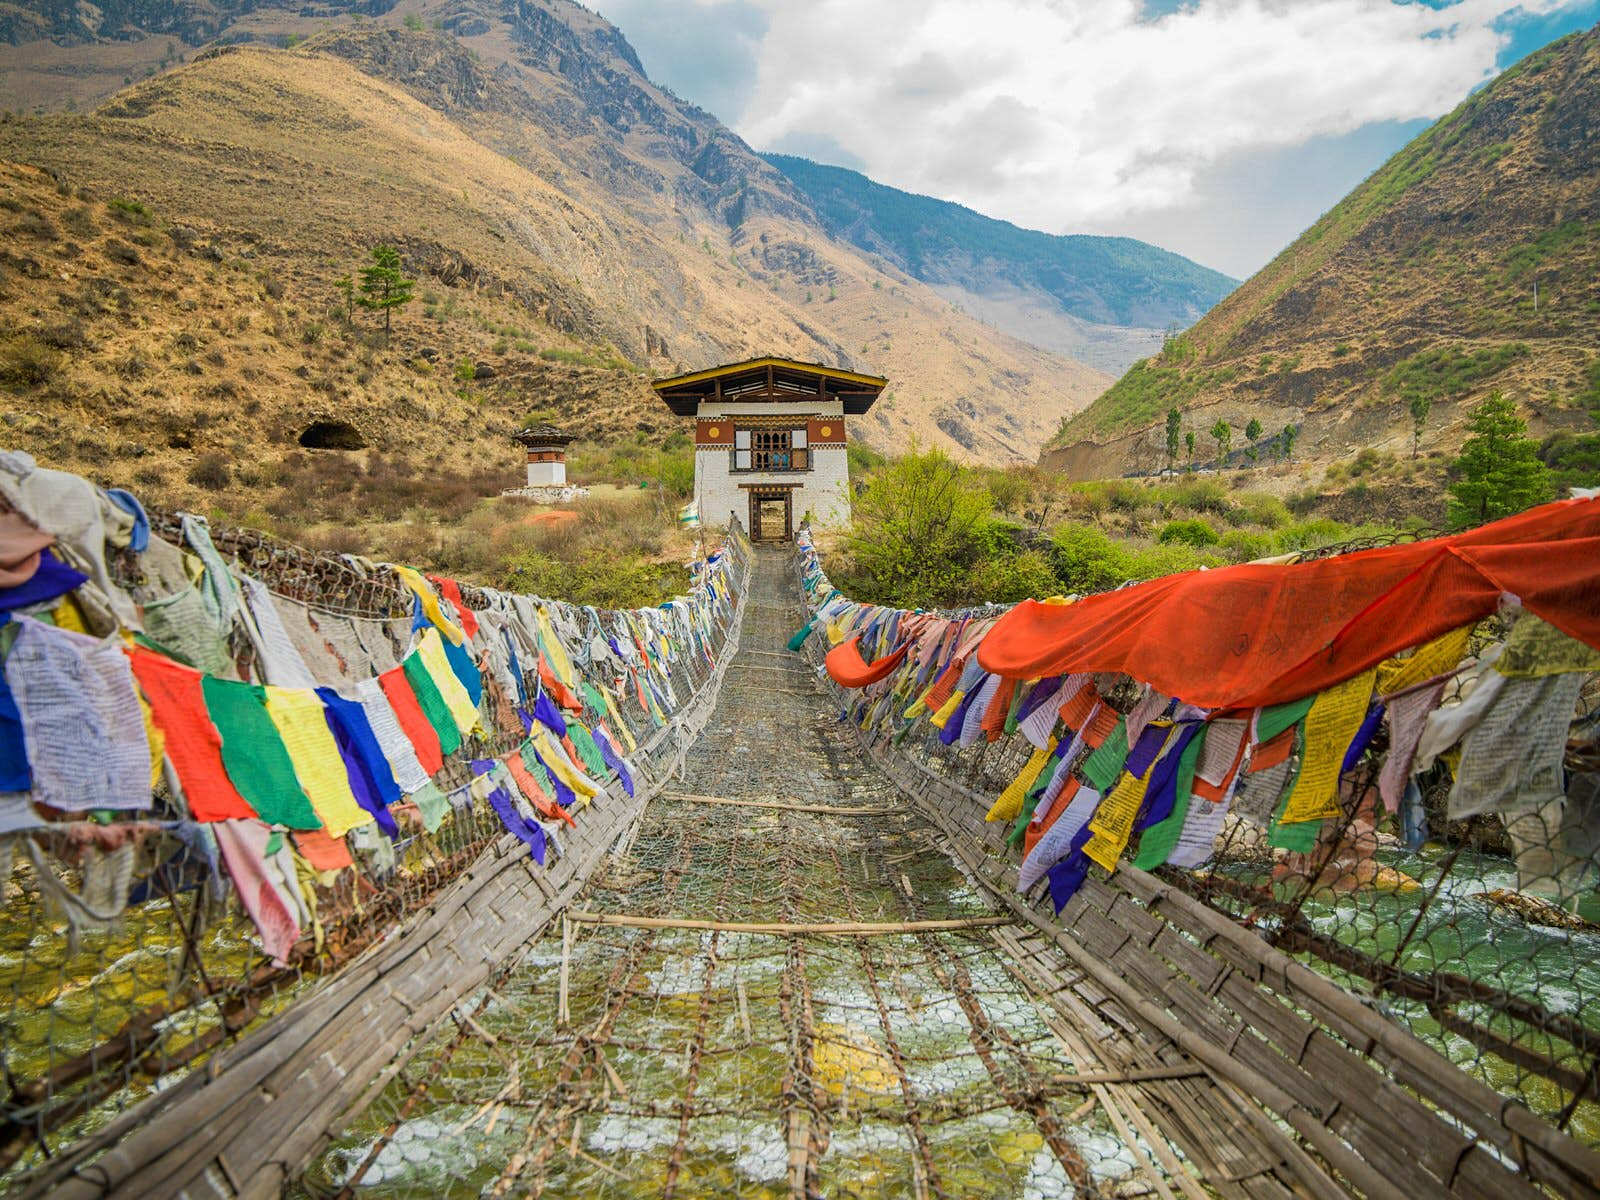 Tachog Lhakhang Iron Chain Bridge with colourful prayer flags on each side of bridge